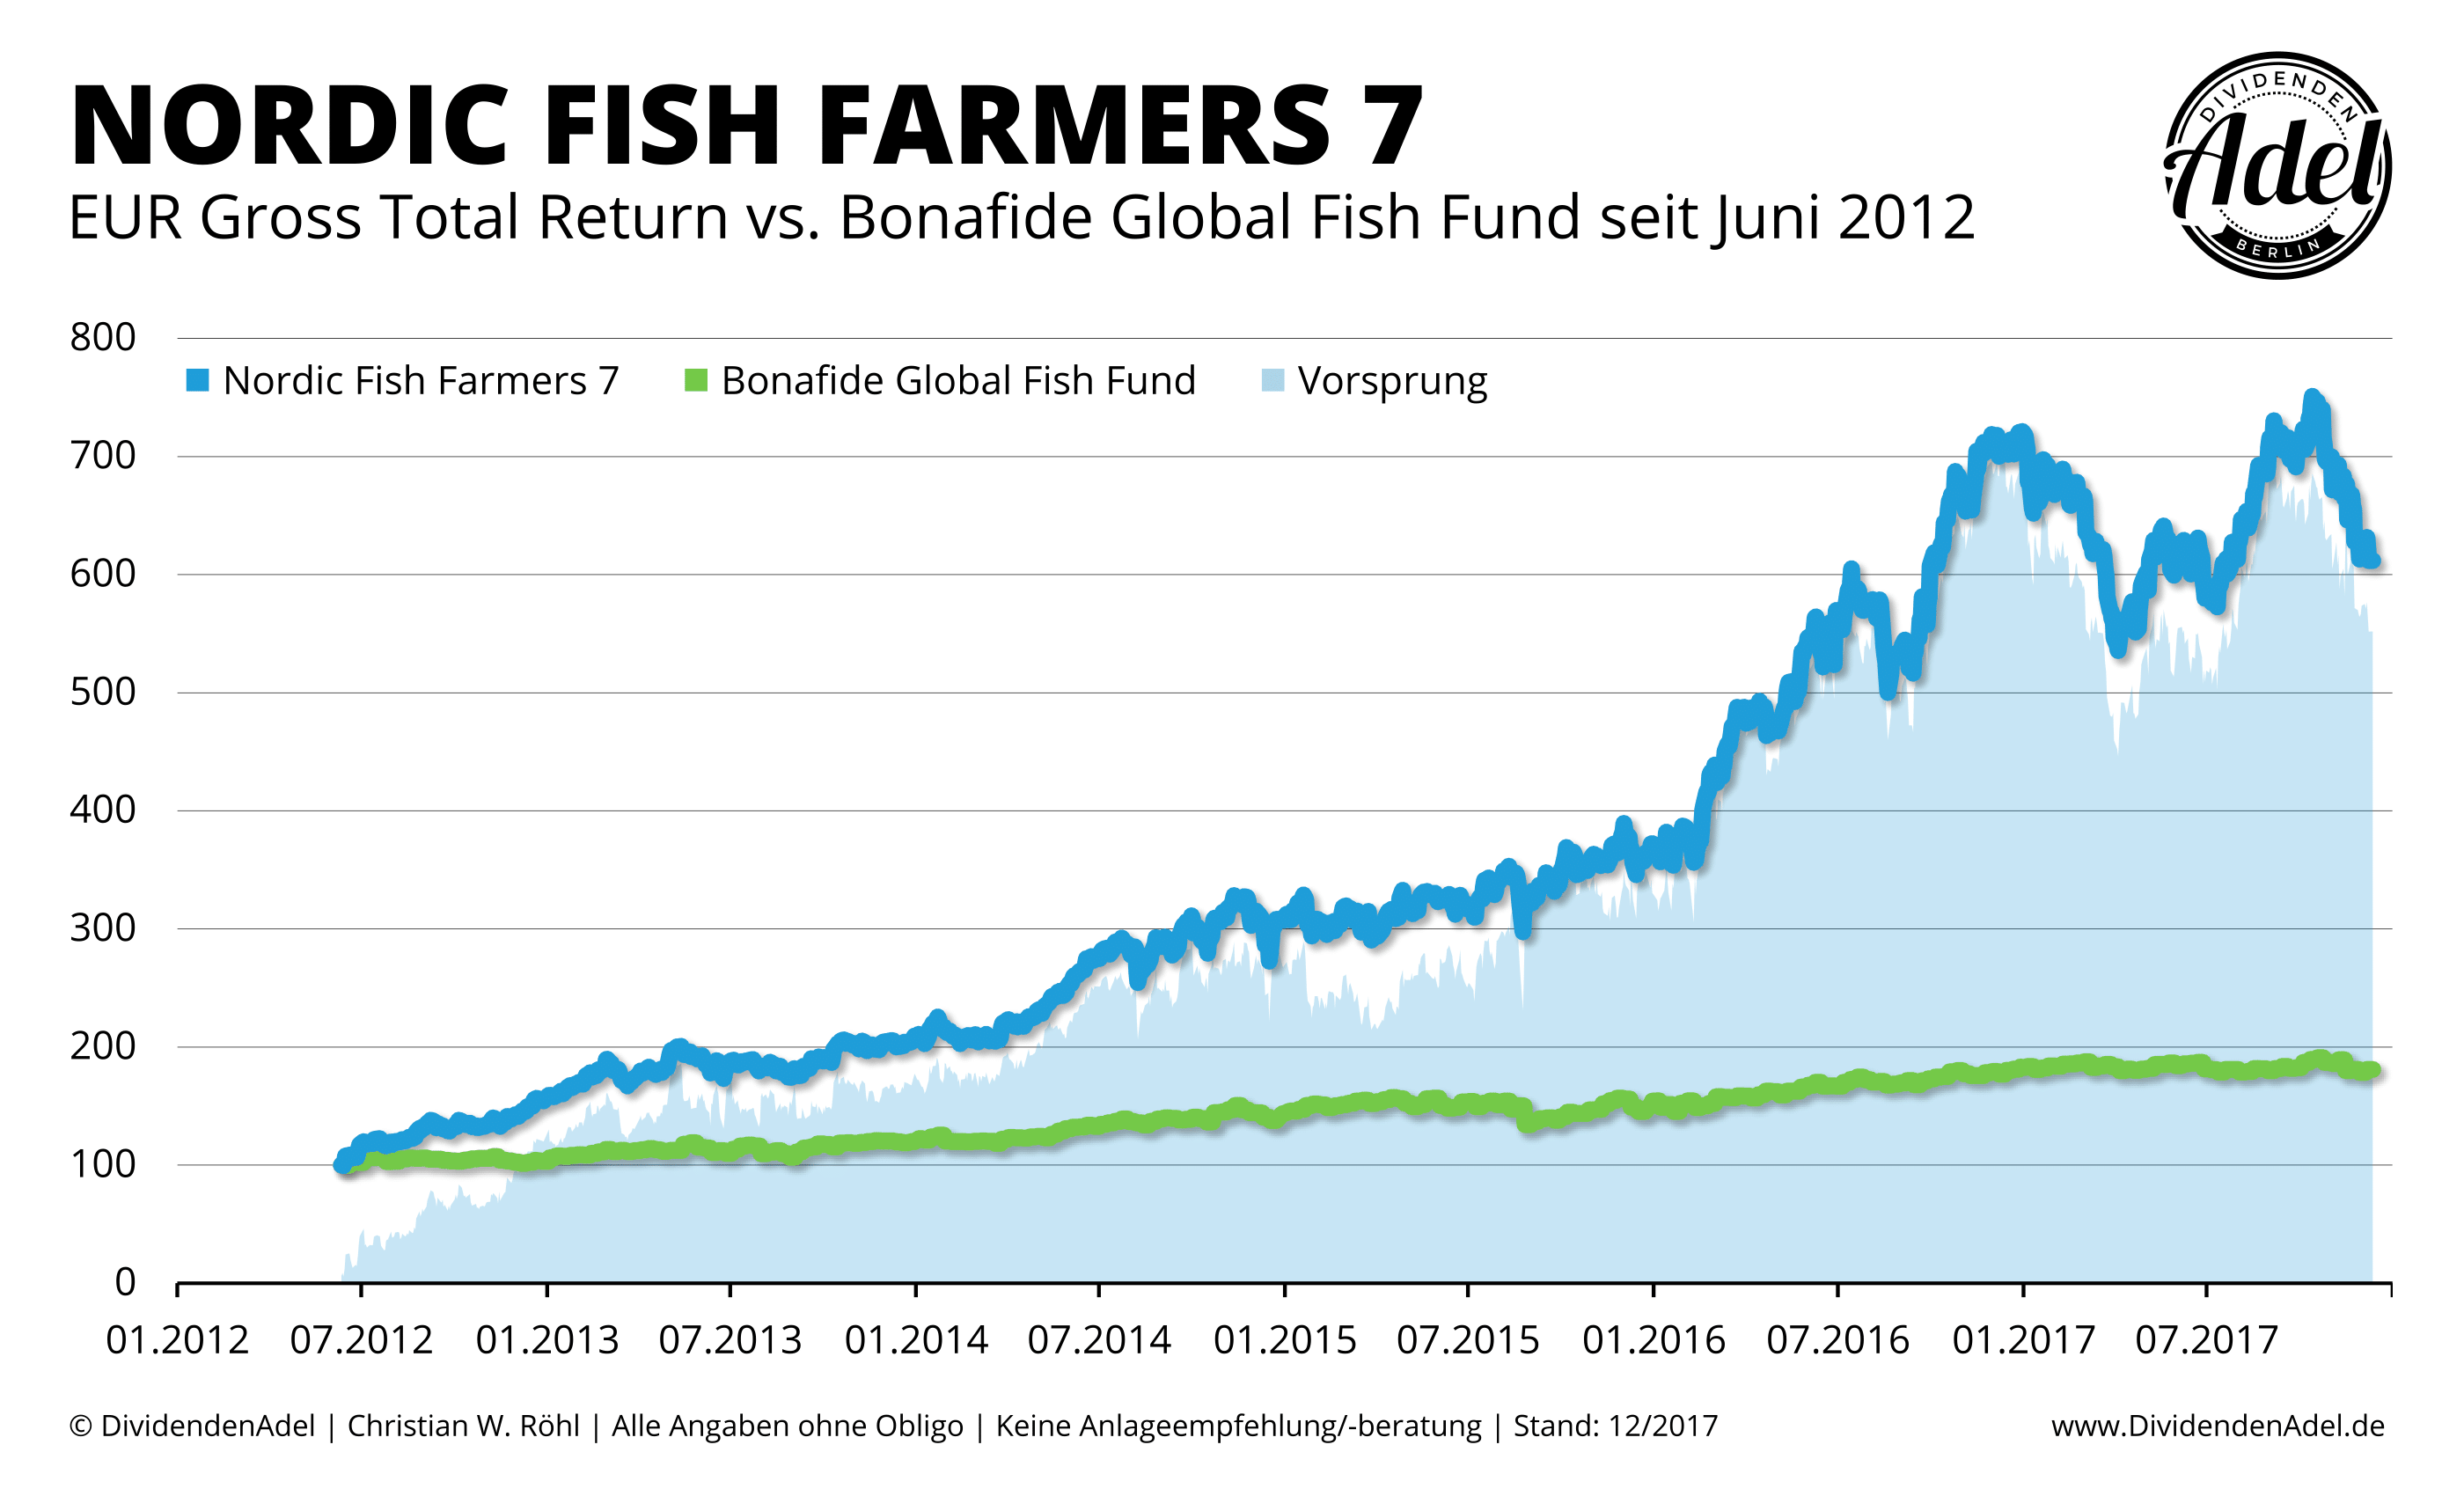 2017-12-12 Nordic Fish Farmers 7 vs. Bonafide Global Fish Fund ab 04-2007-1